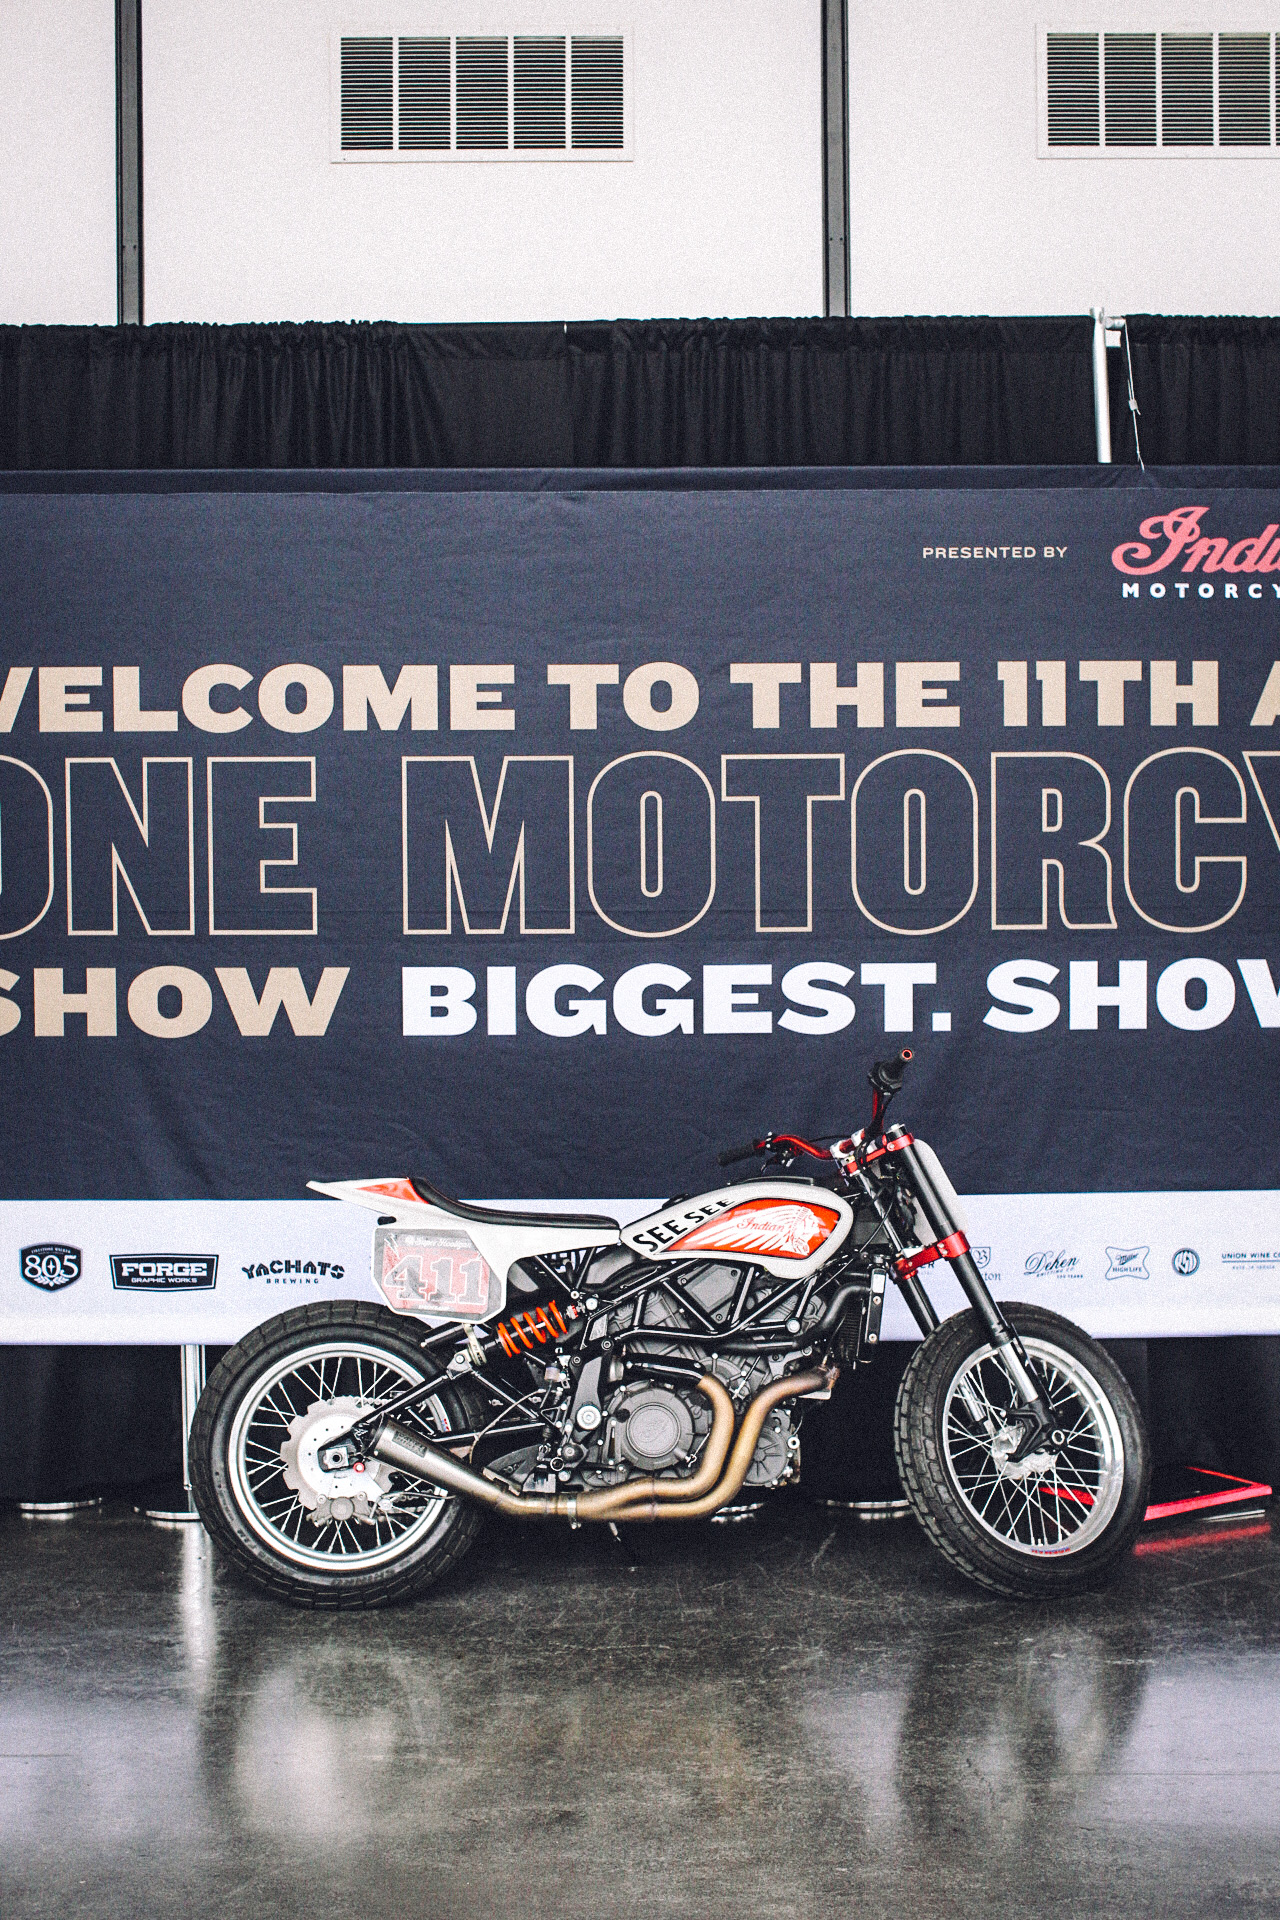 Indian Hooligan racer at The One Motorcycle Show